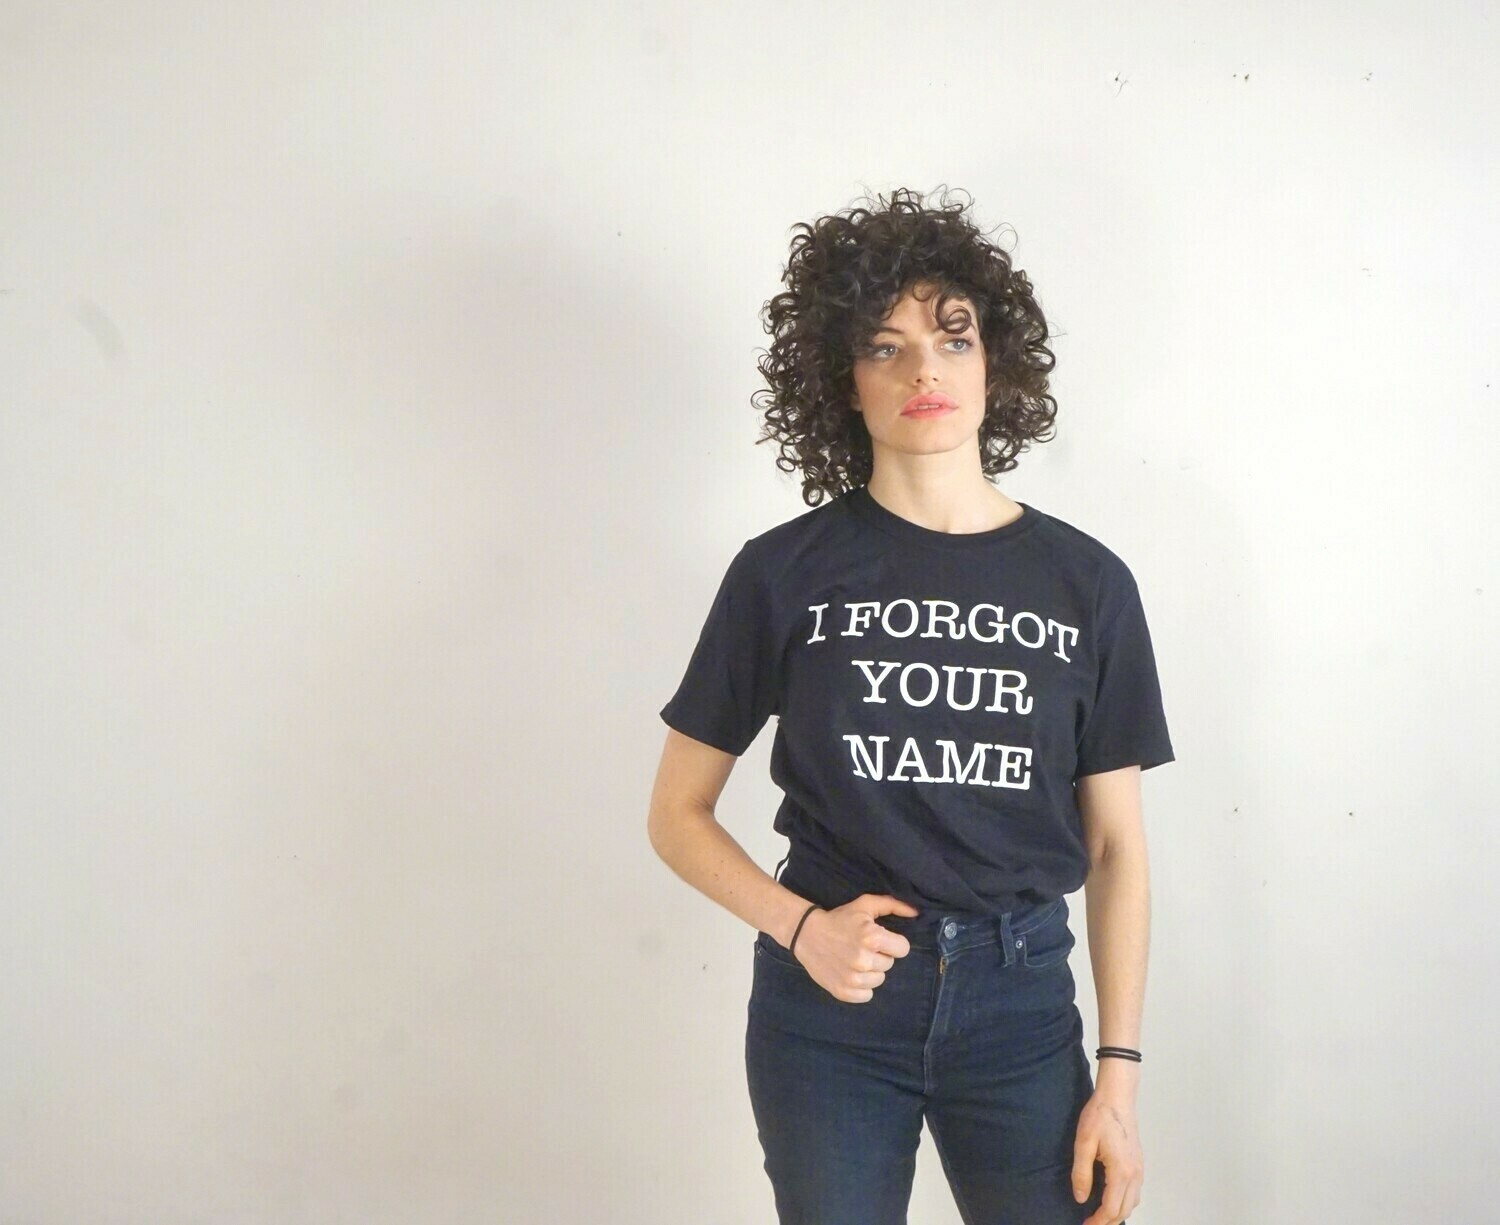 I FORGOT YOUR NAME - TShirt Small